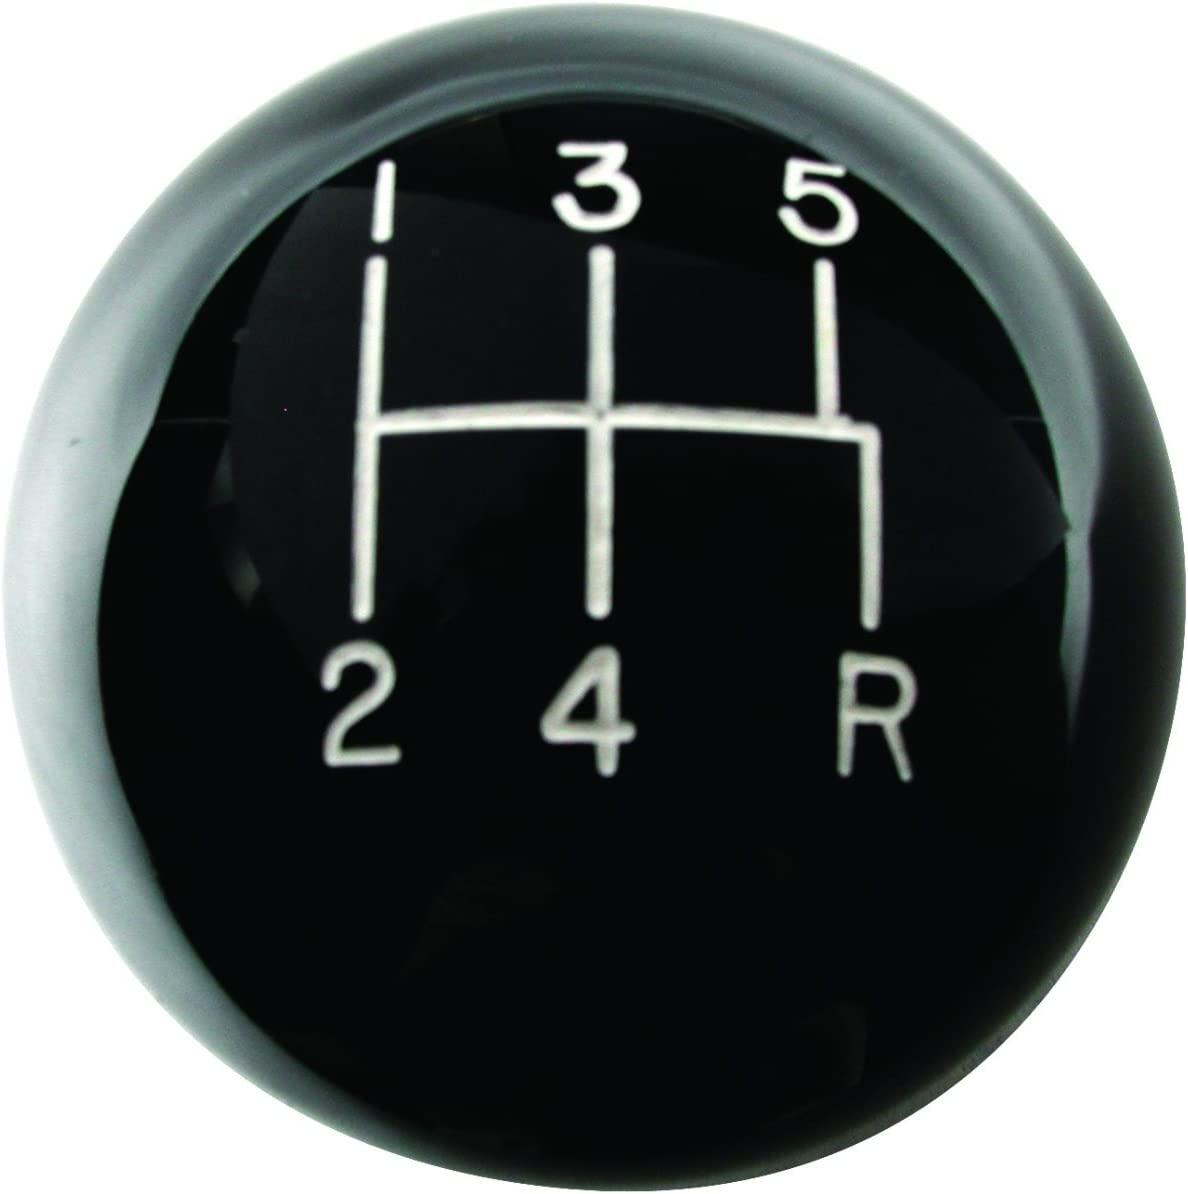 American Shifter 146400 Black Retro Shift Knob with M16 x 1.5 Insert Red Officer 11 - General of Air Force